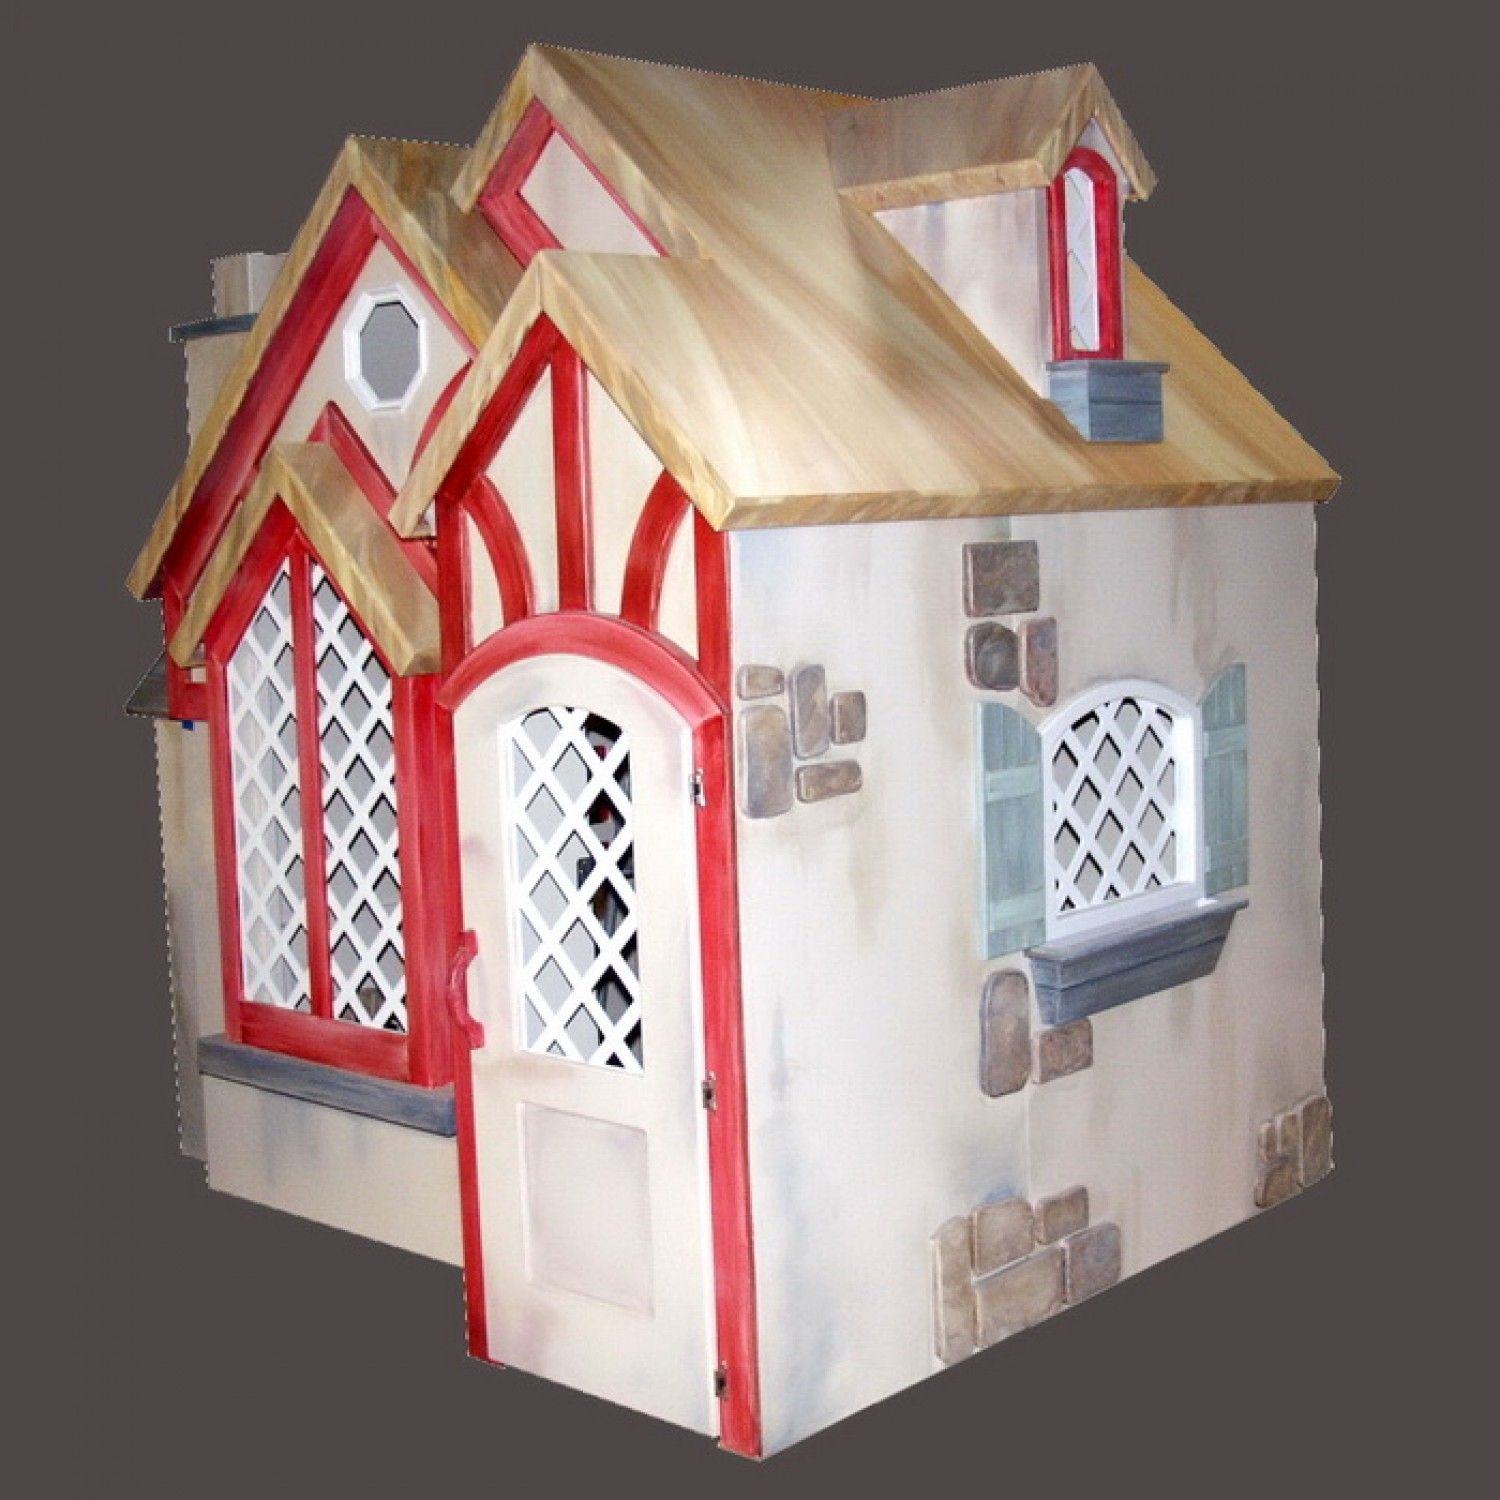 Snow White Indoor Playhouse Tanglewood Design Play